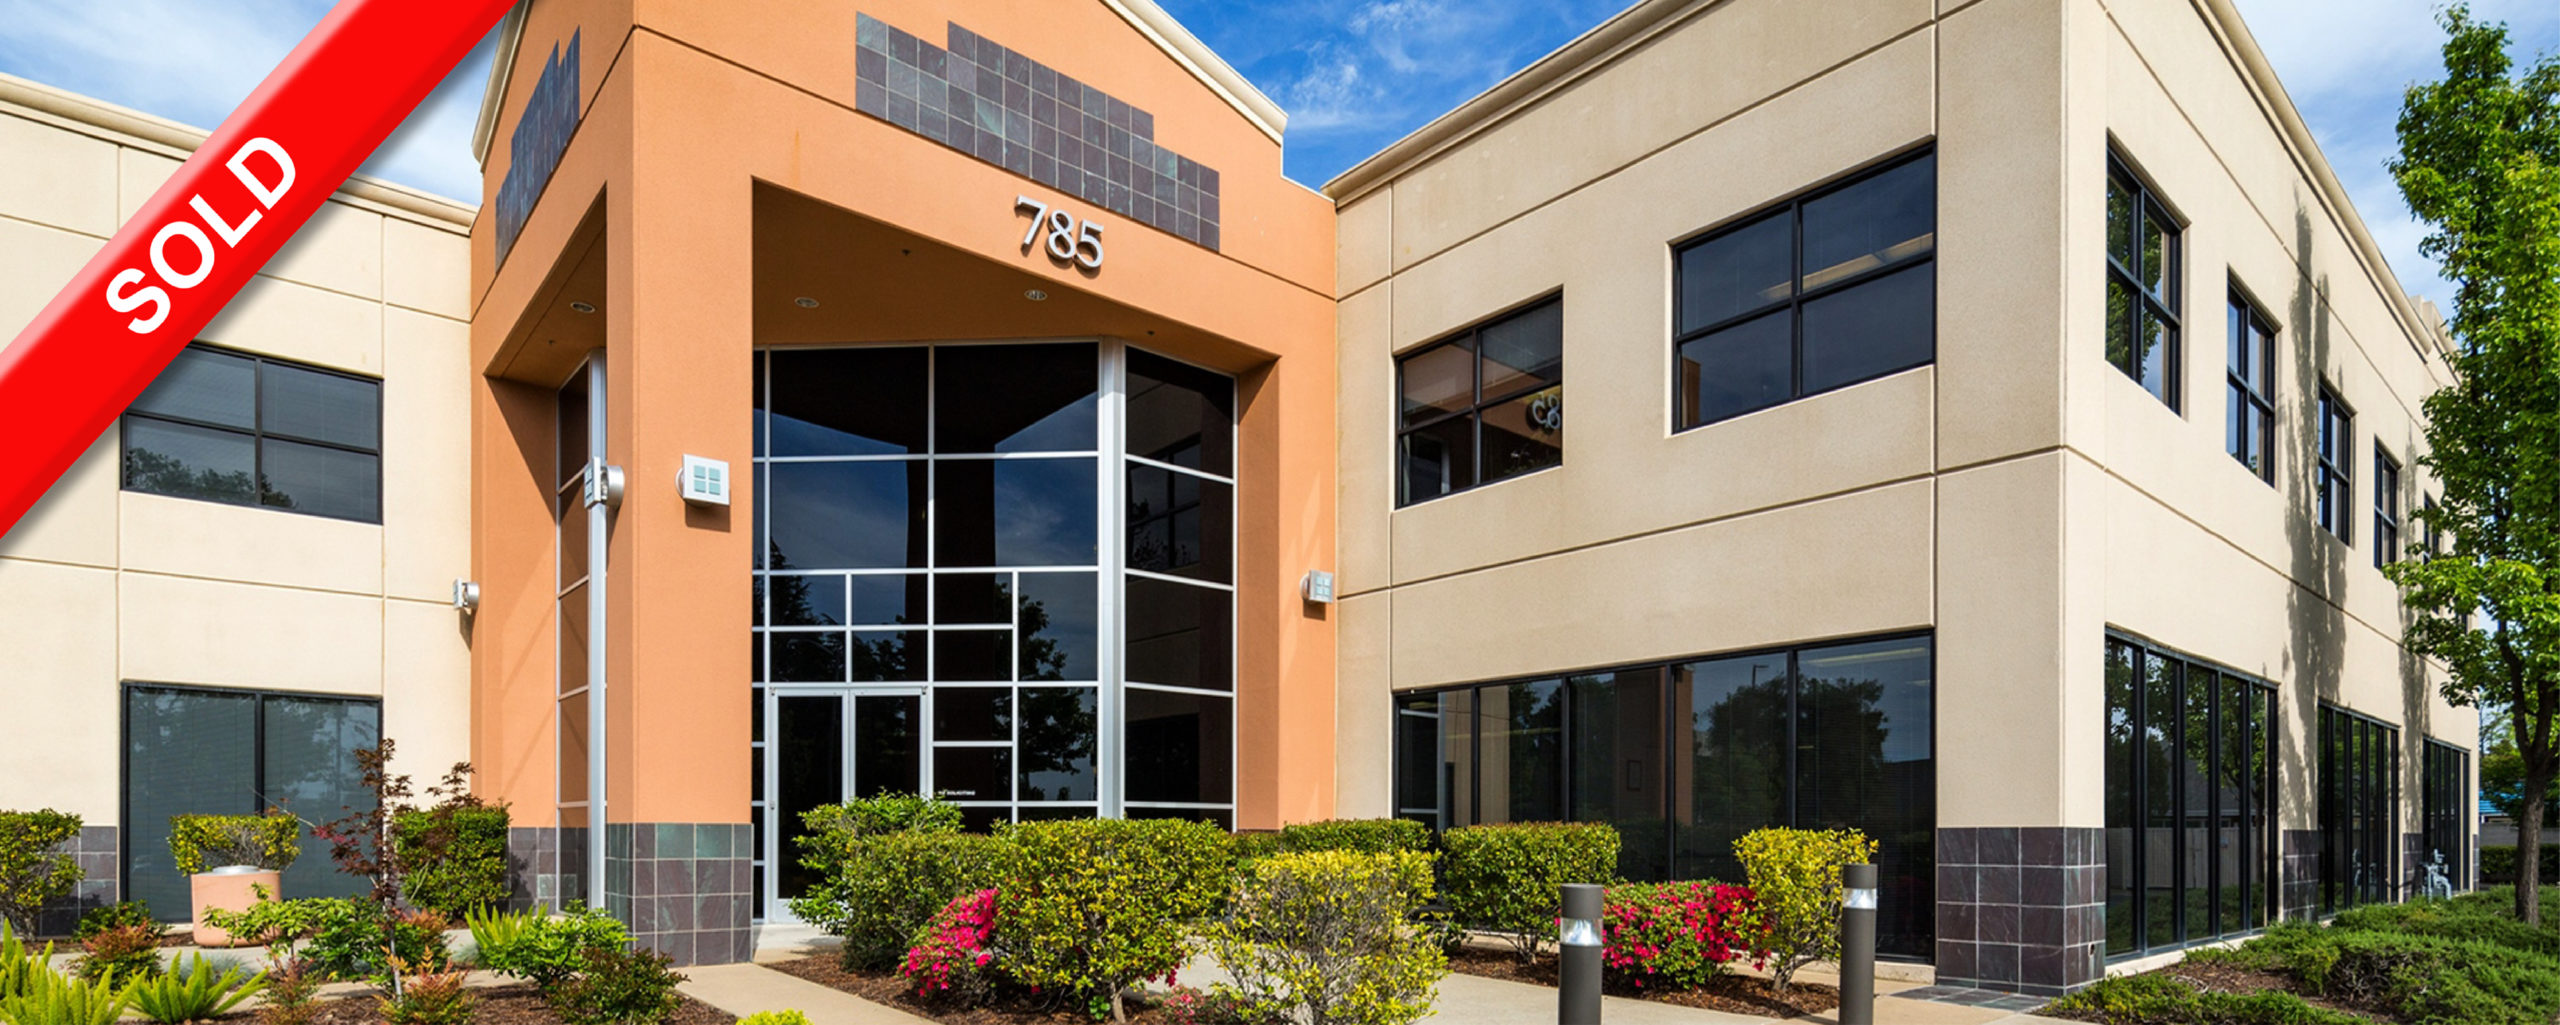 Schwager_Development_SD_Commercial_Real_Estate_Properties_Folsom_California Commercial Real Estate